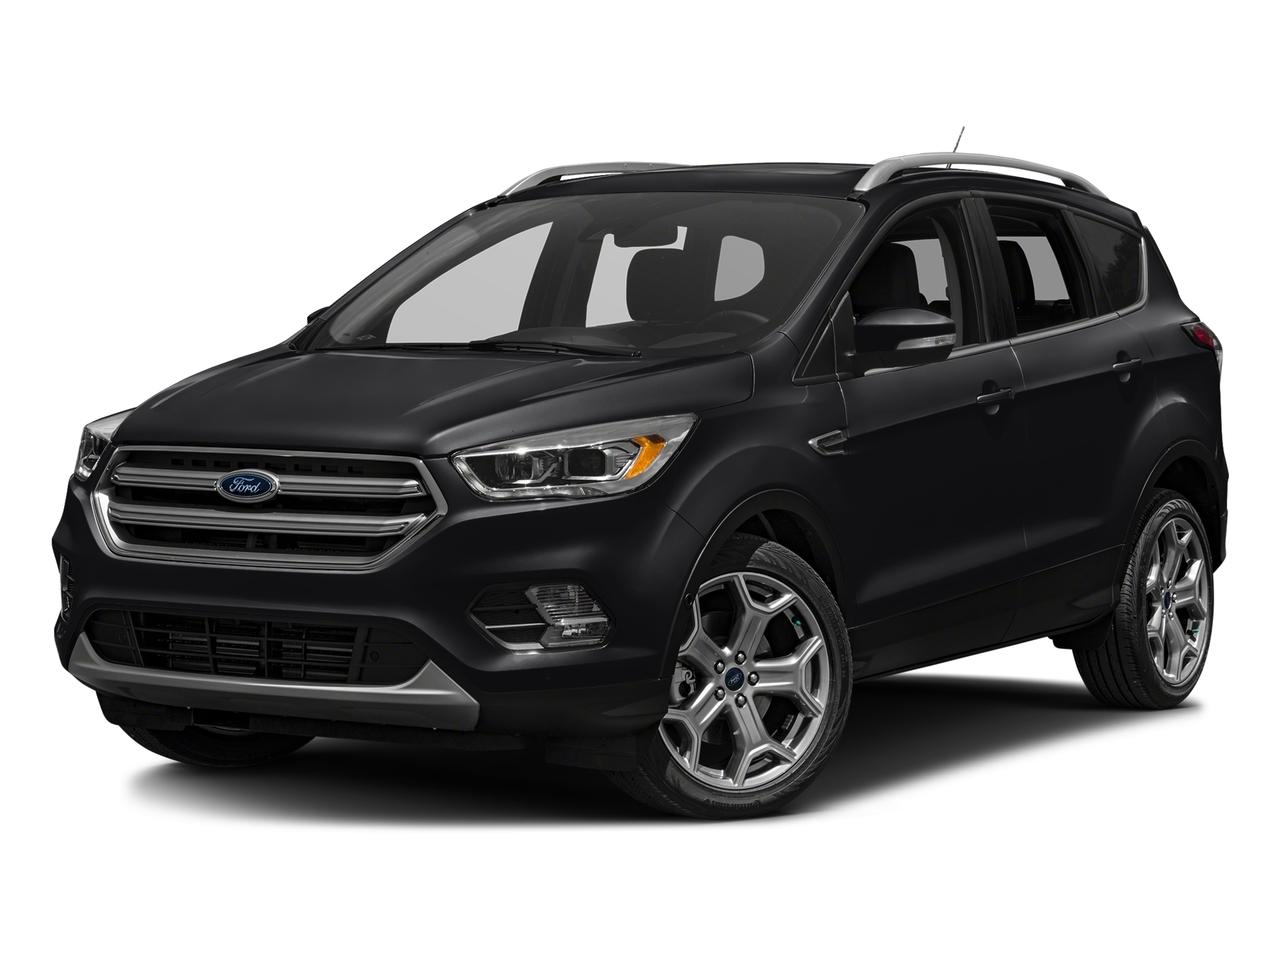 2017 Ford Escape Vehicle Photo in Columbus, GA 31904